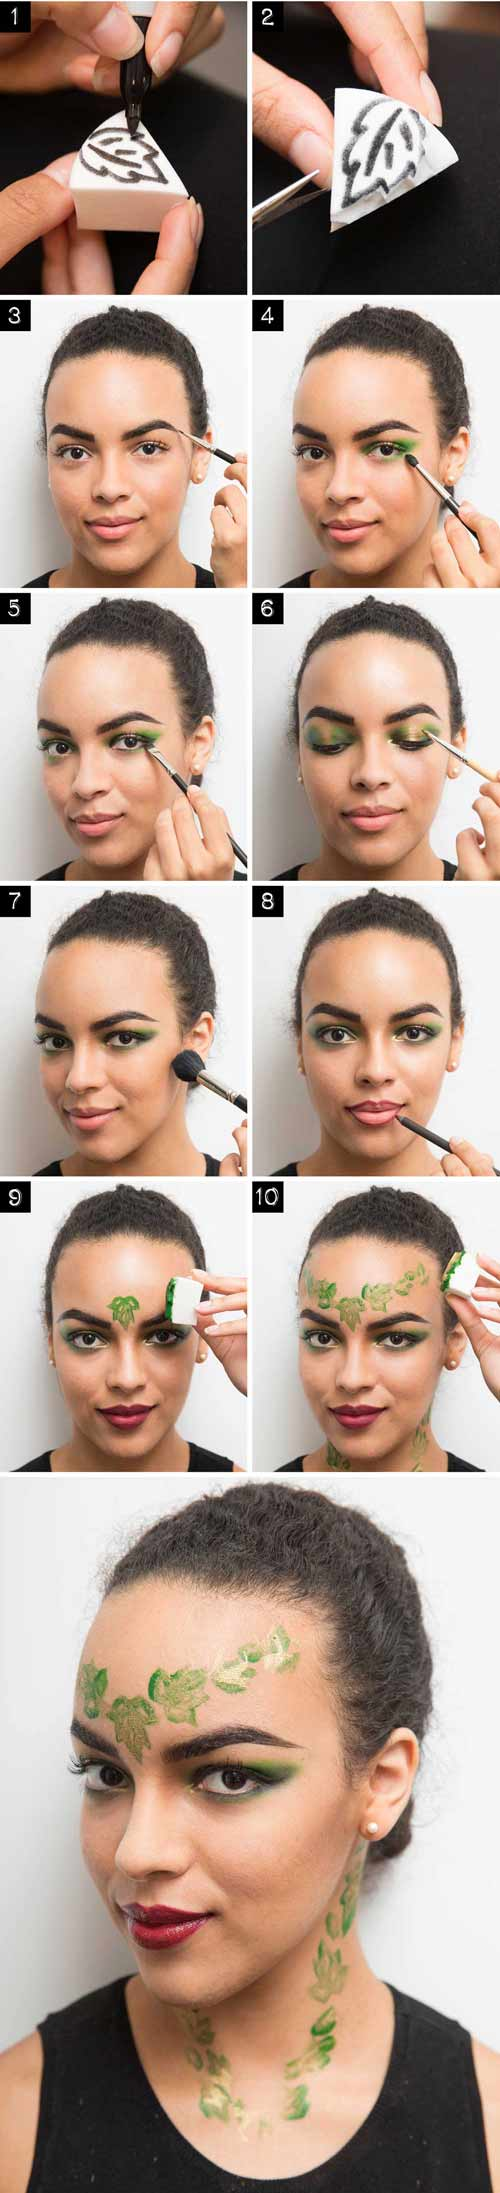 4 cach make-up cuc quai cho dem halloween chi rieng ban co - 3